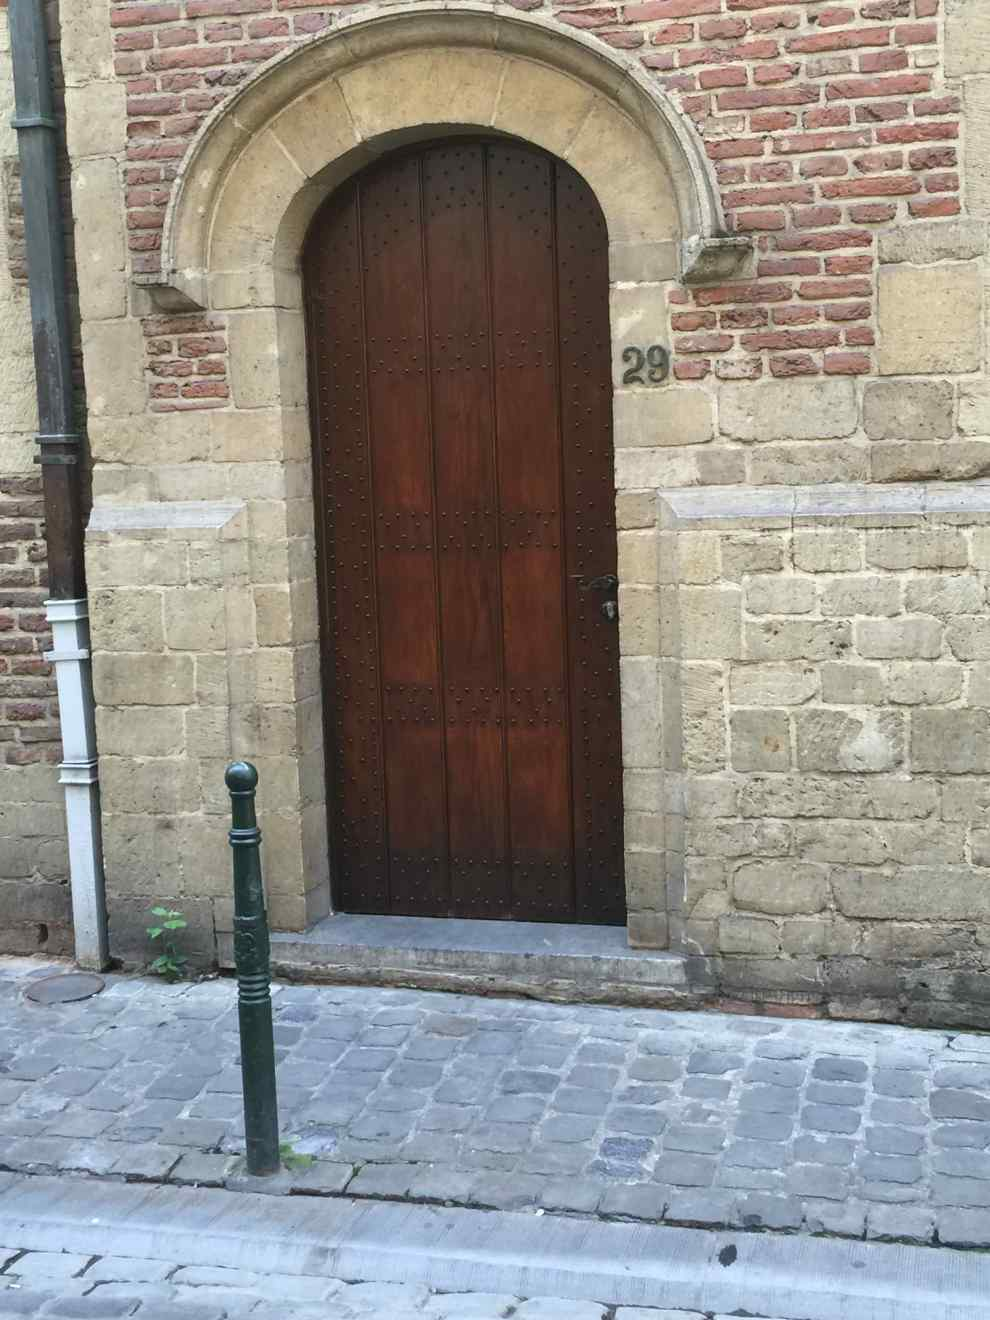 Interesting door styles